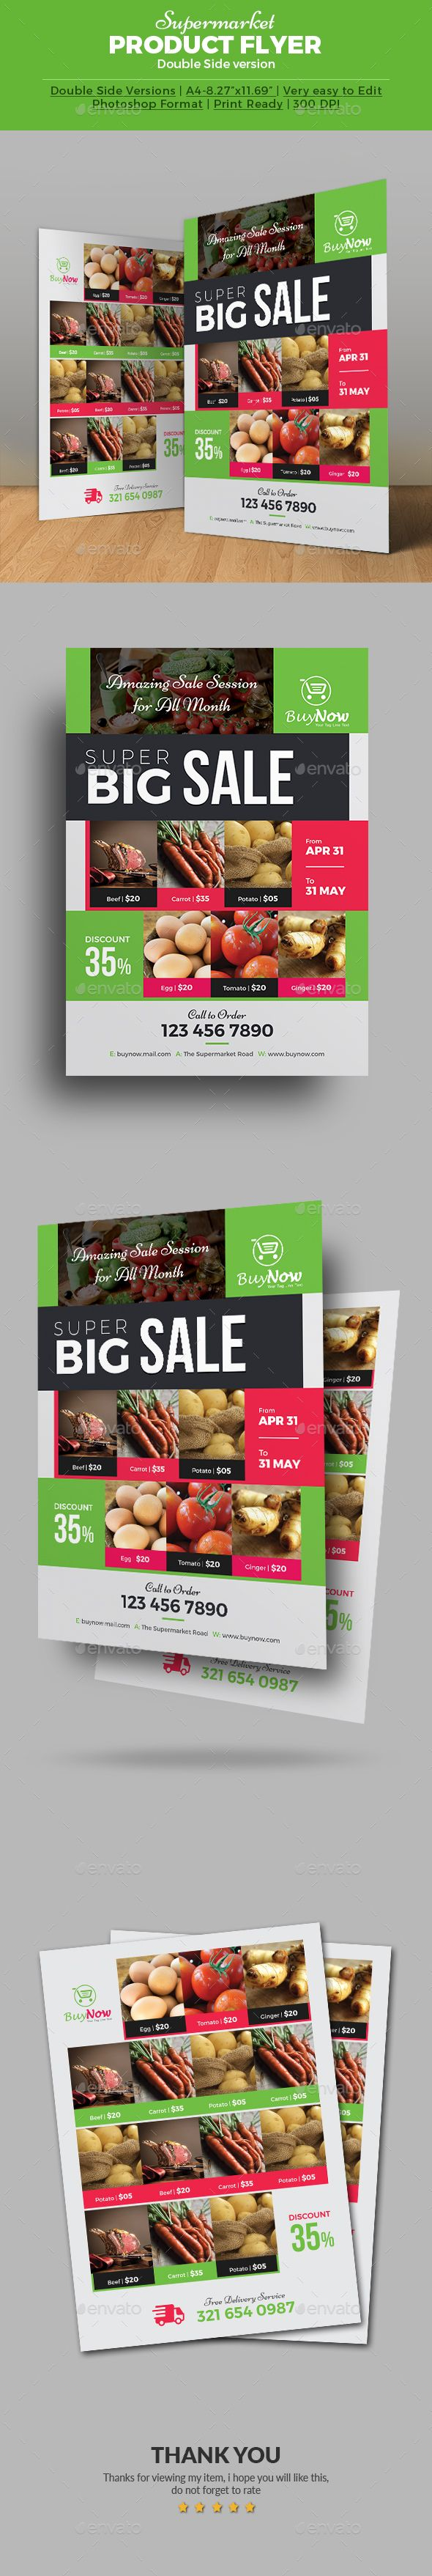 Product Promotion Flyer Template for Grocery Product, Super Shop Promotion, Super Market Promotion purposes. For Download http://graphicriver.net/item/product-promotion-flyer/16067601?ref=themedevisers